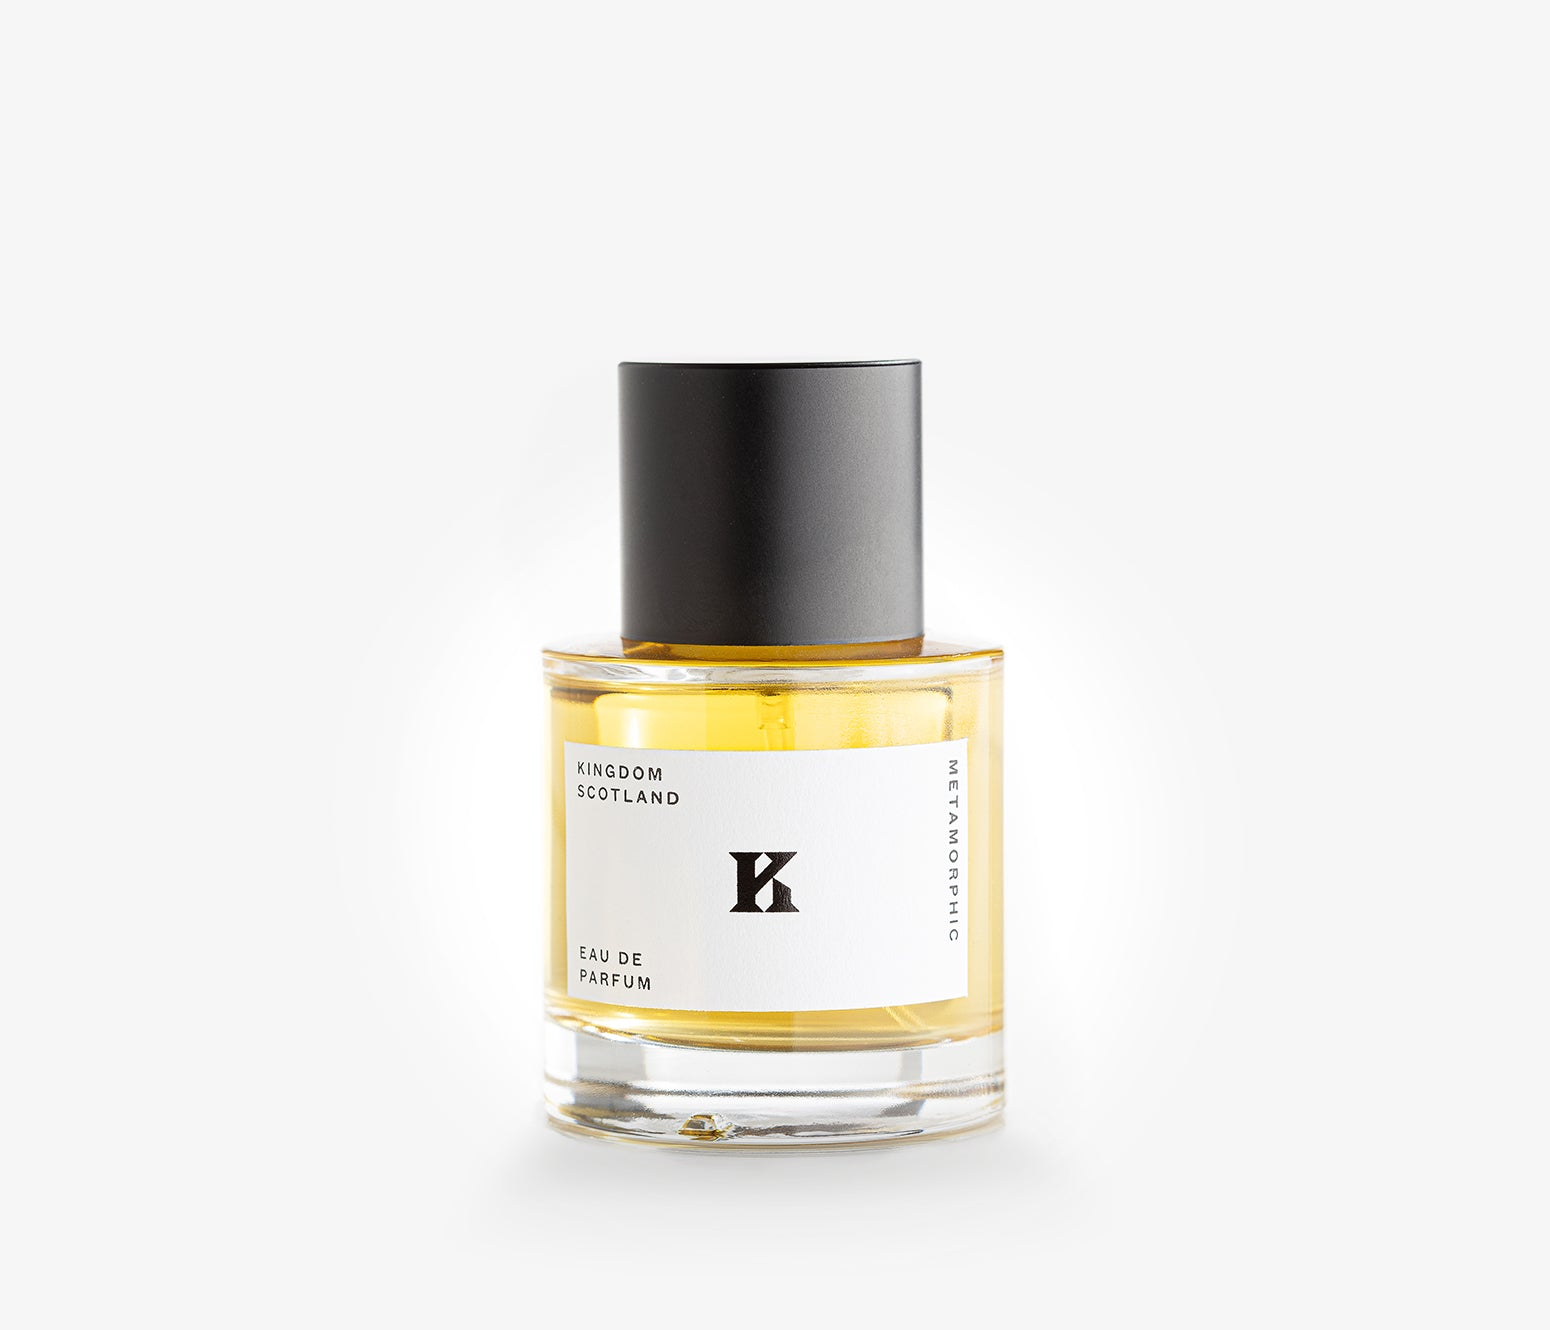 Kingdom Scotland - Metamorphic - 50ml - KHK001 - product image - Fragrance - Les Senteurs